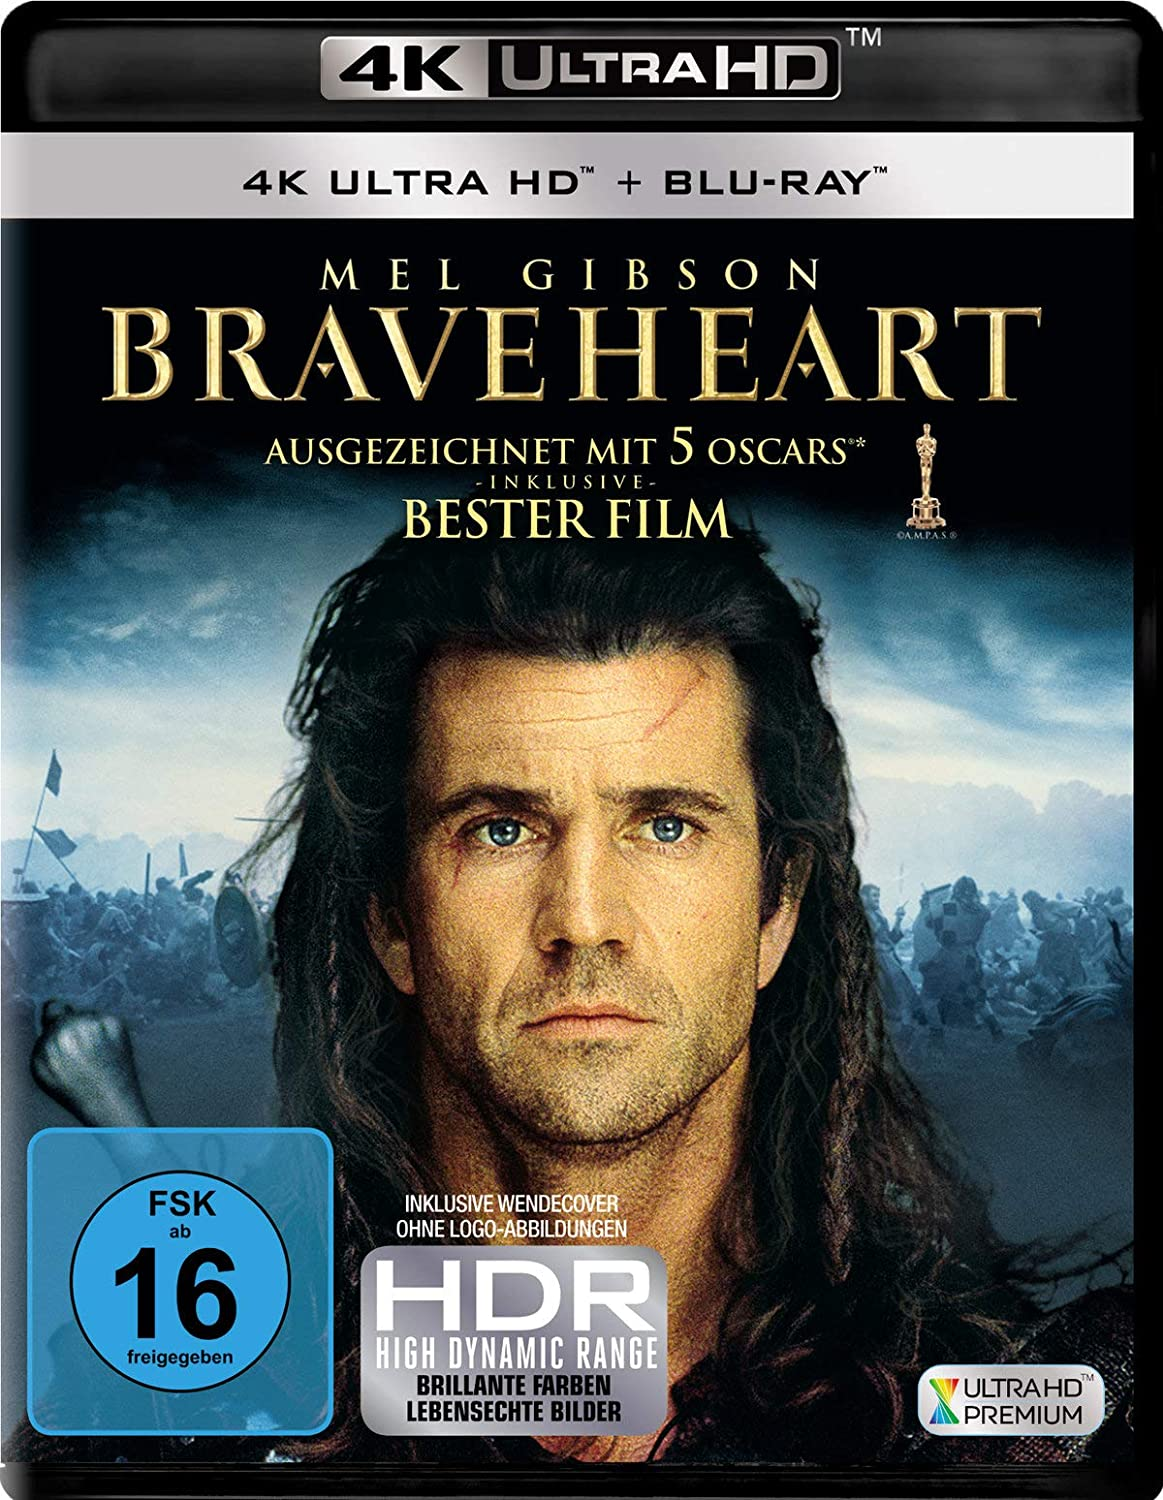 Braveheart - Ultra HD Blu-ray [4k + Blu-ray Disc]